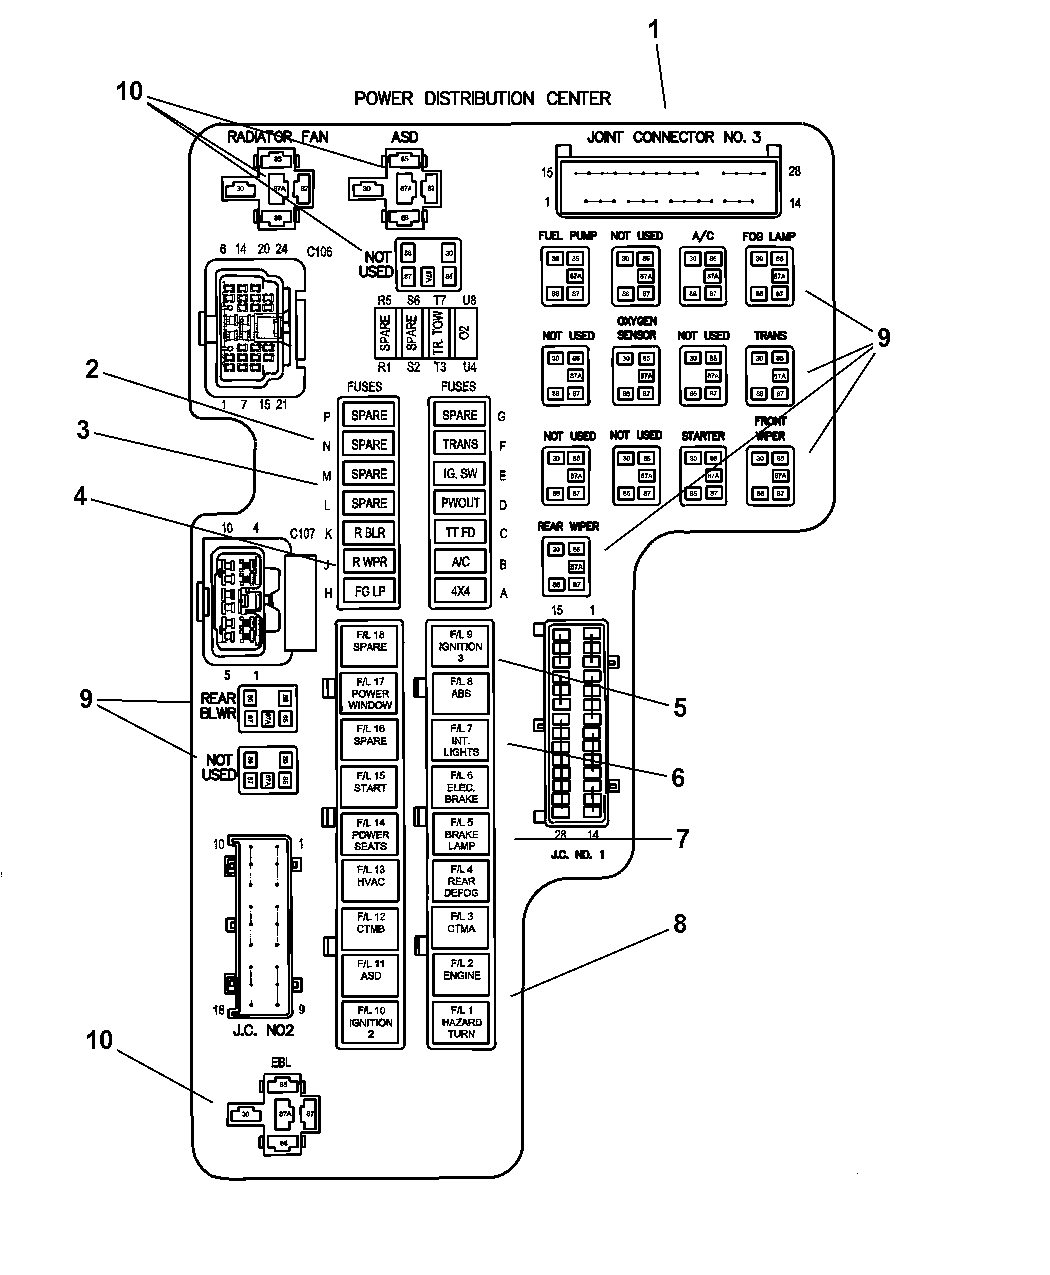 2002 dodge dakota power distribution center relay \u0026 fusesDakota Fuse Diagram #18